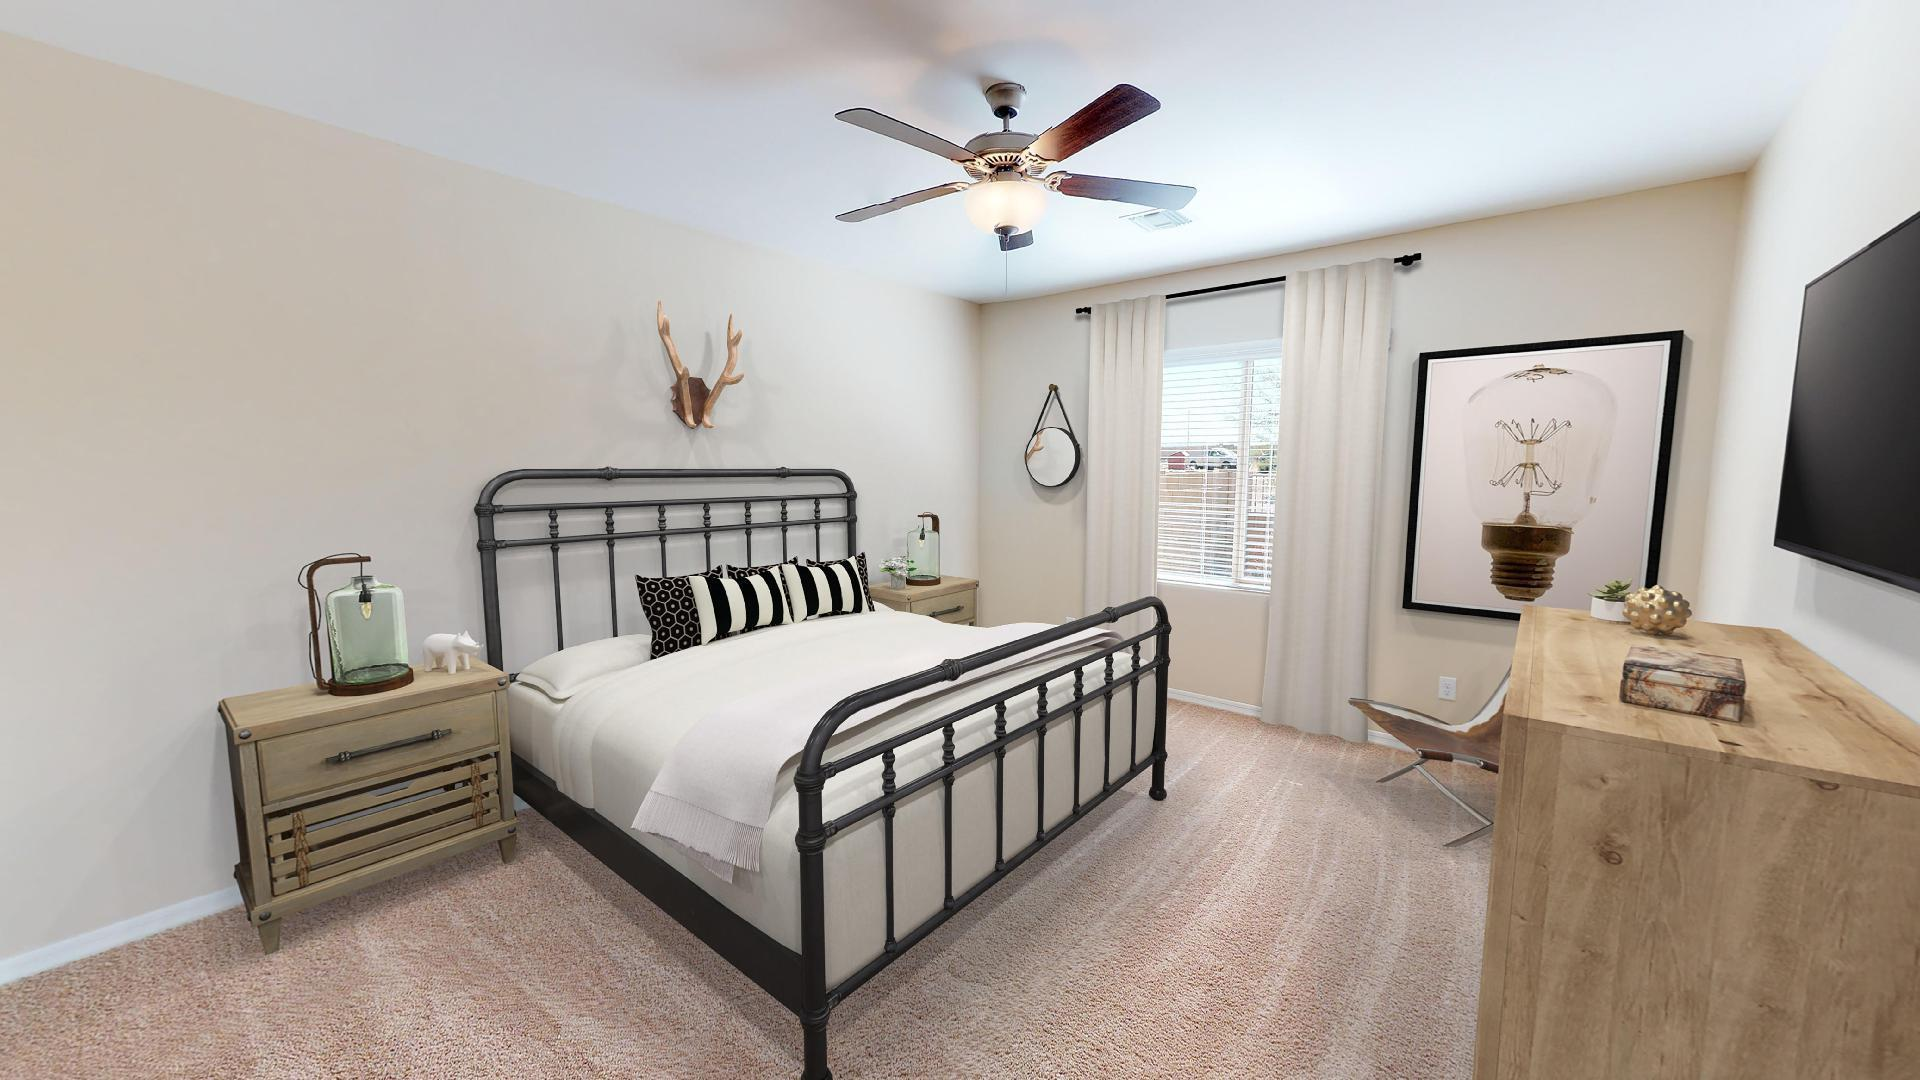 Bedroom featured in the Plan 3 By Elliott Homes - Arizona in Yuma, AZ